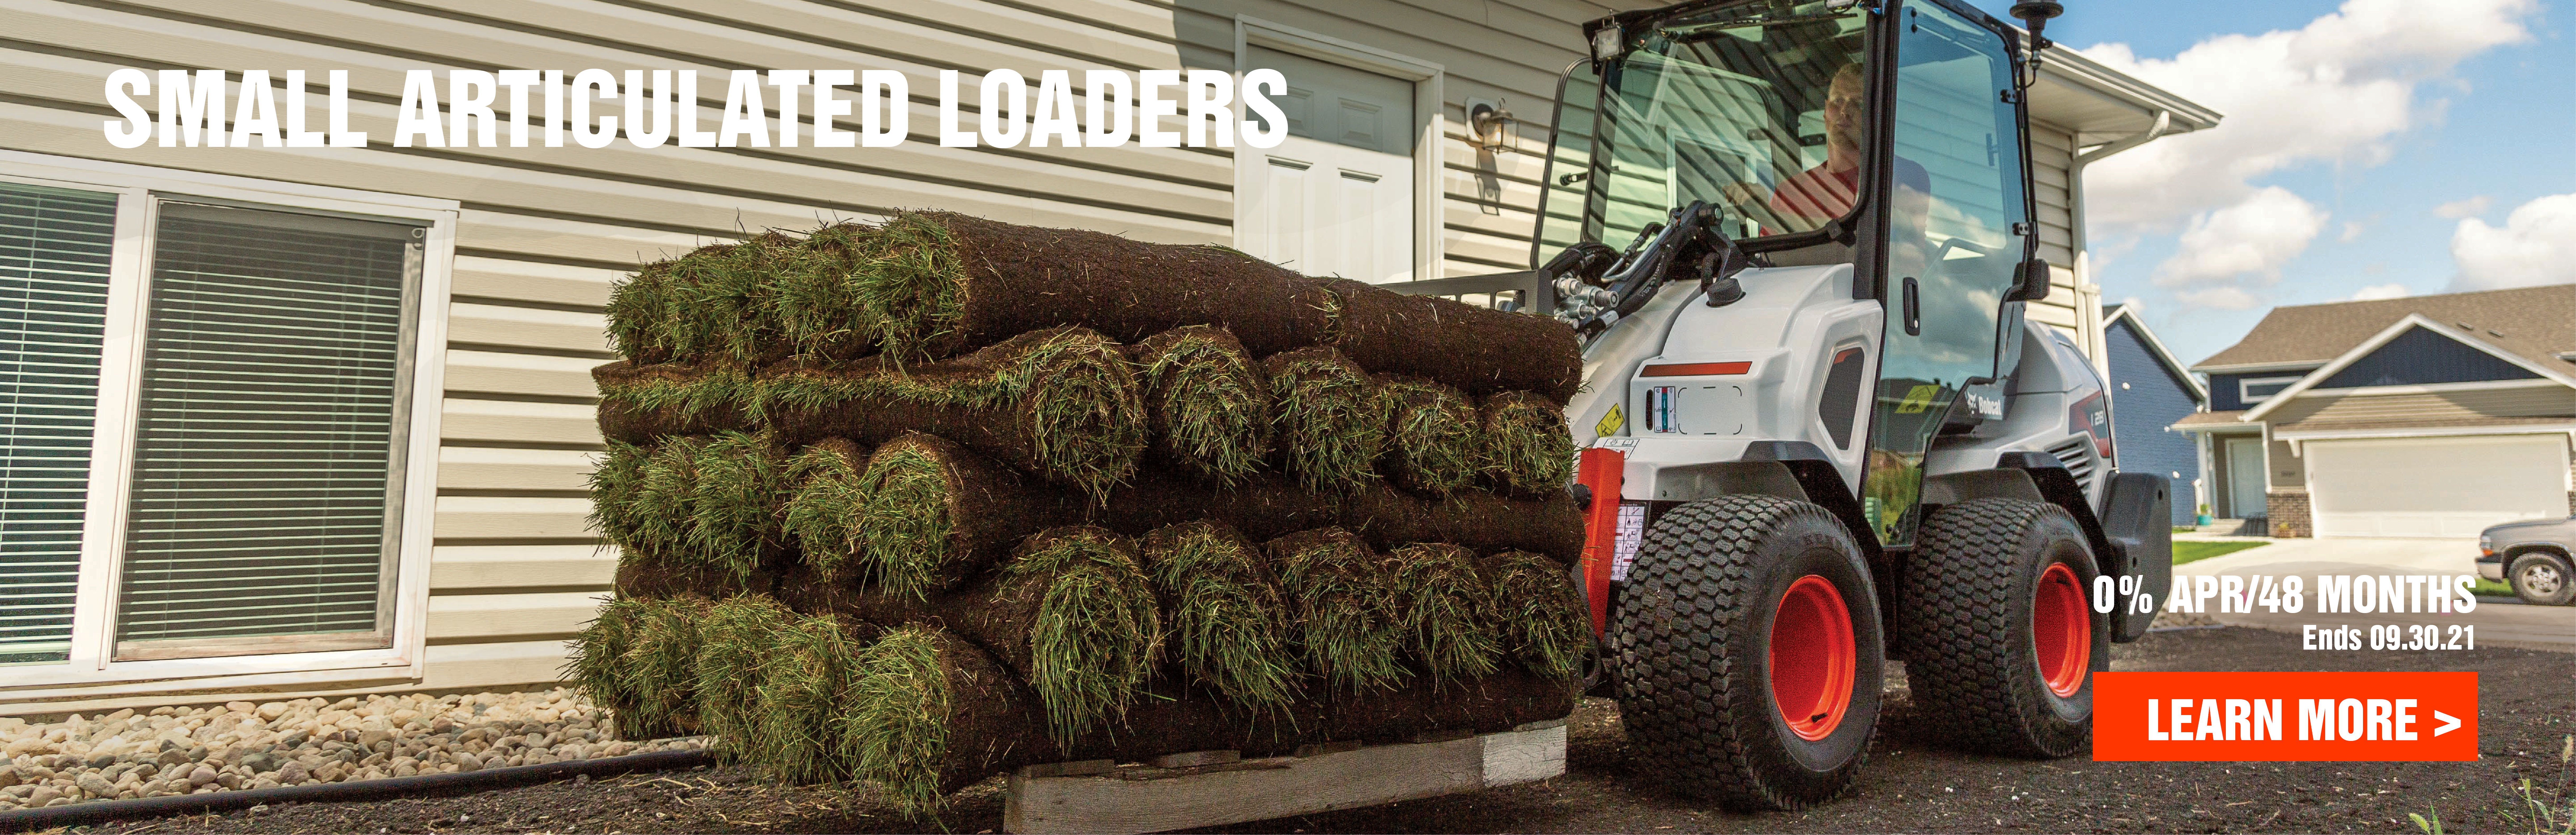 Get 0% financing on Bobcat small articulated loaders